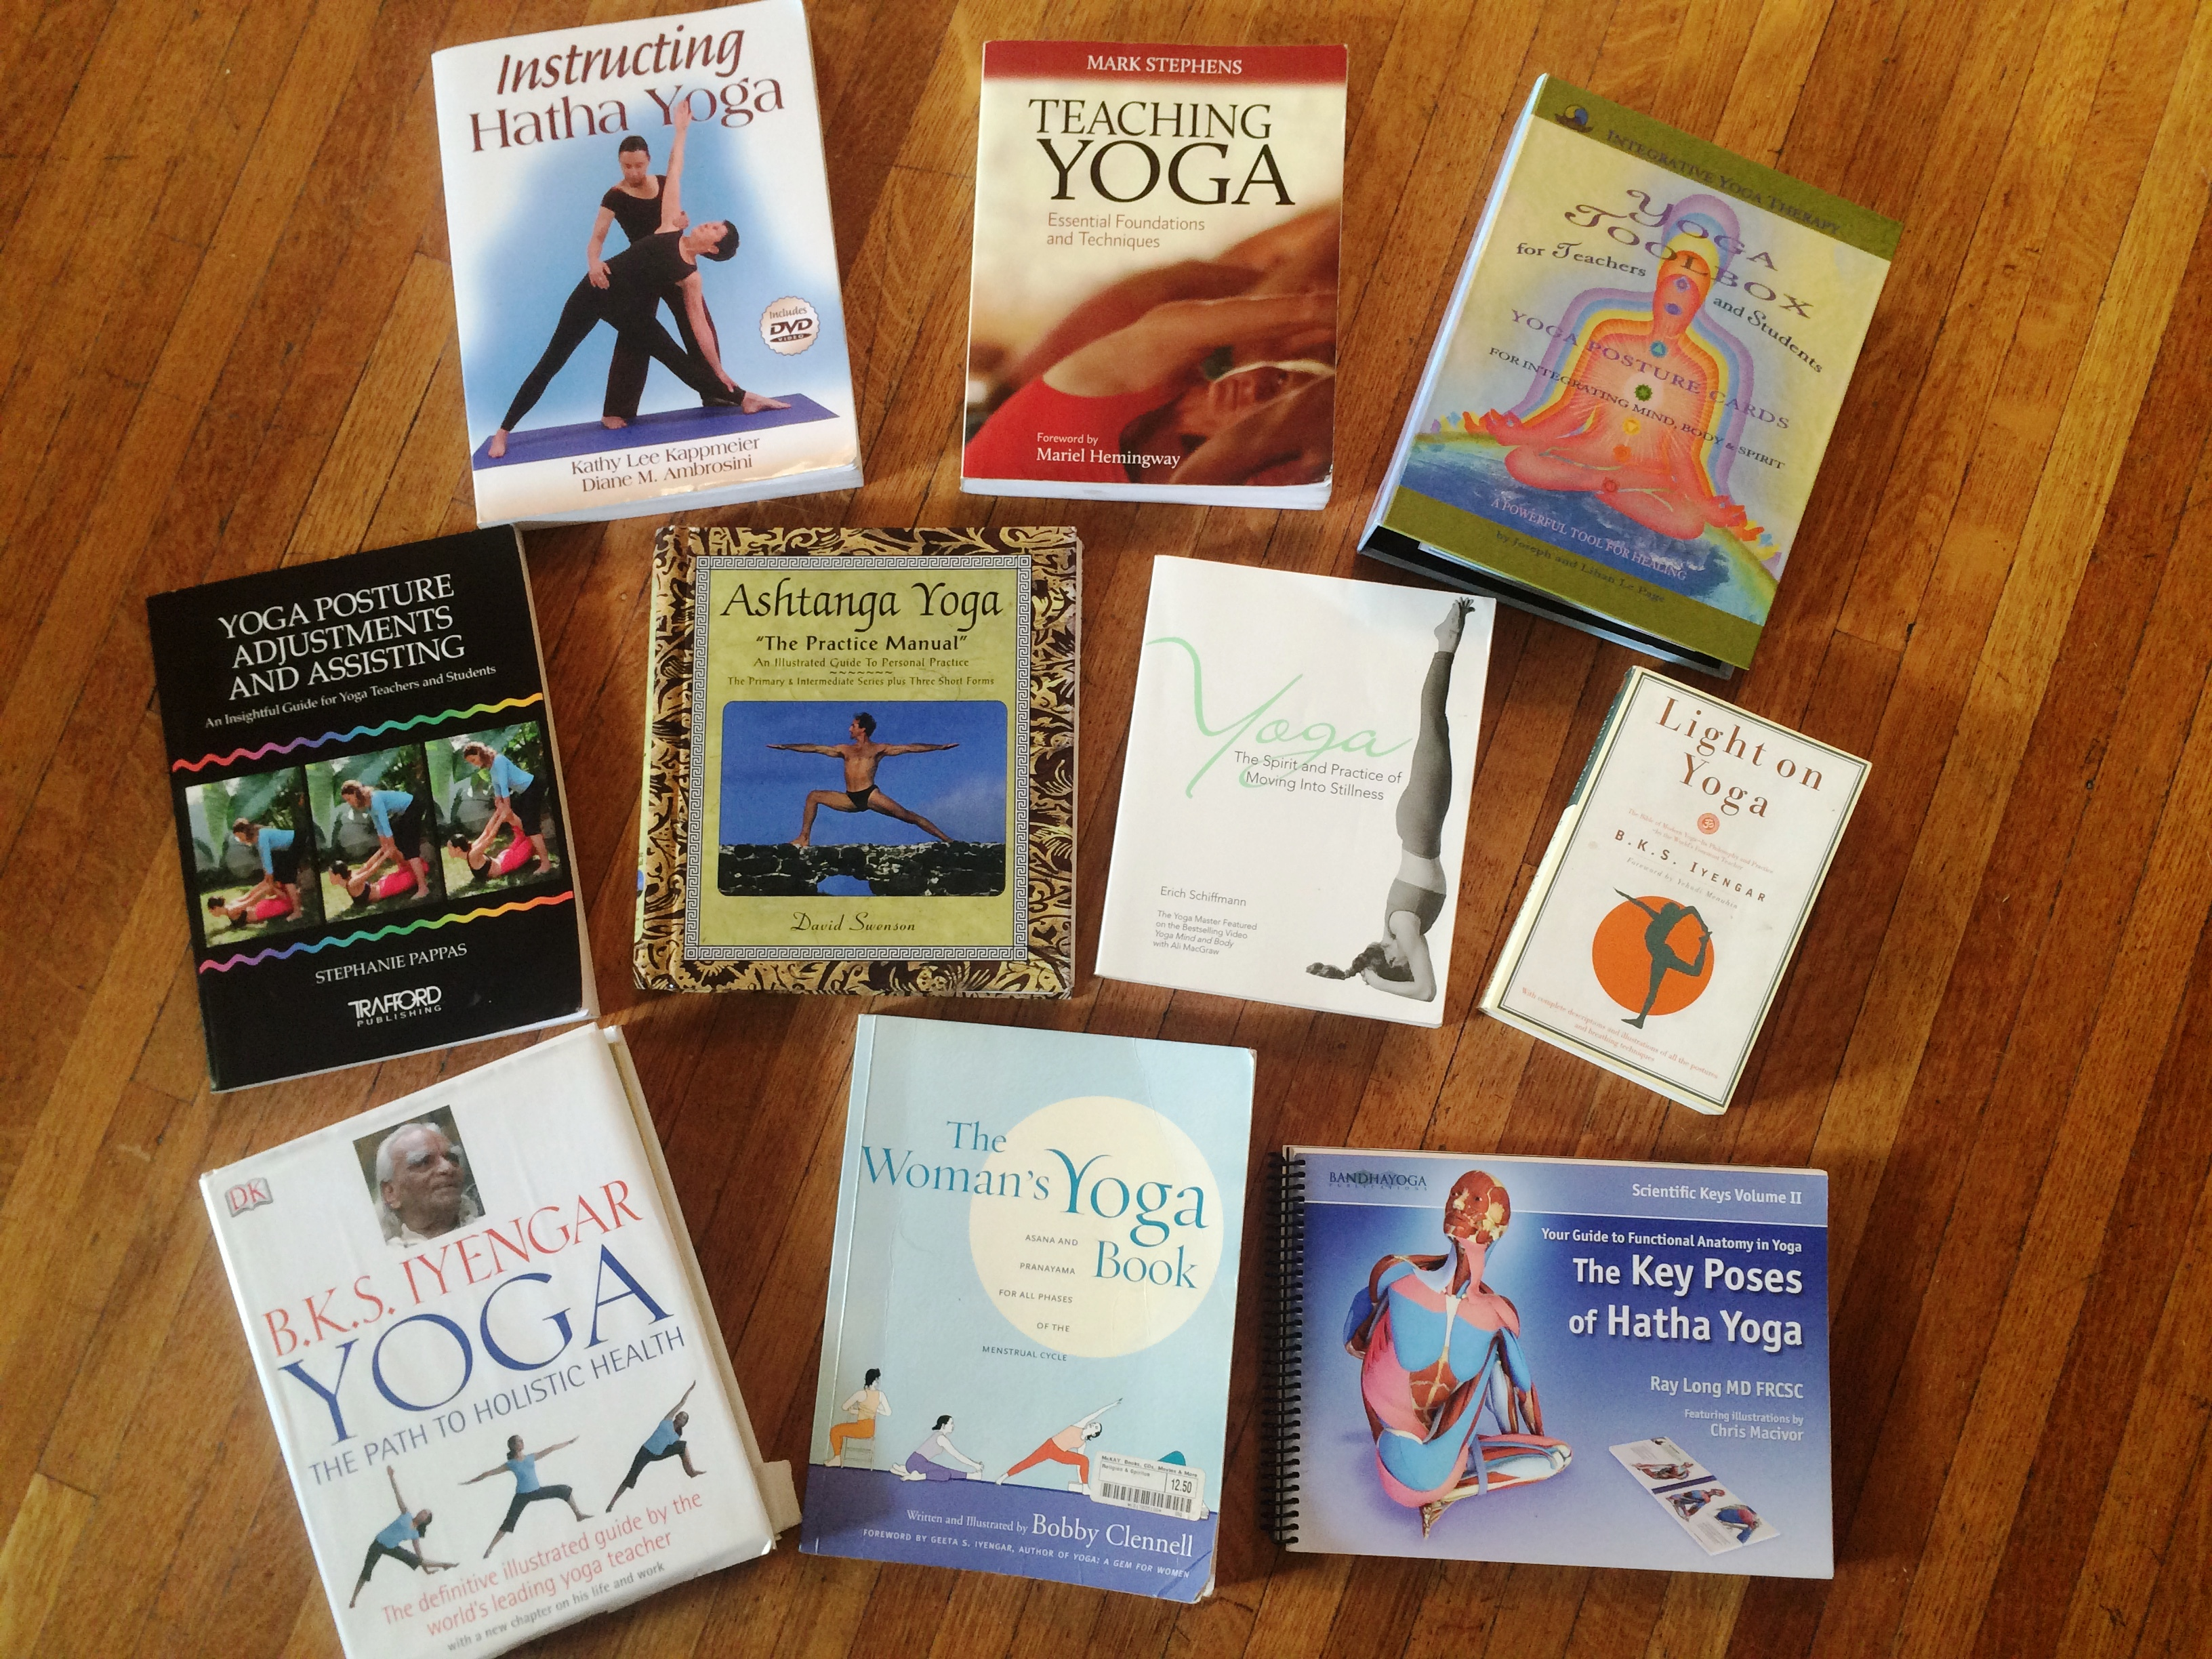 ashtanga yoga practice manual